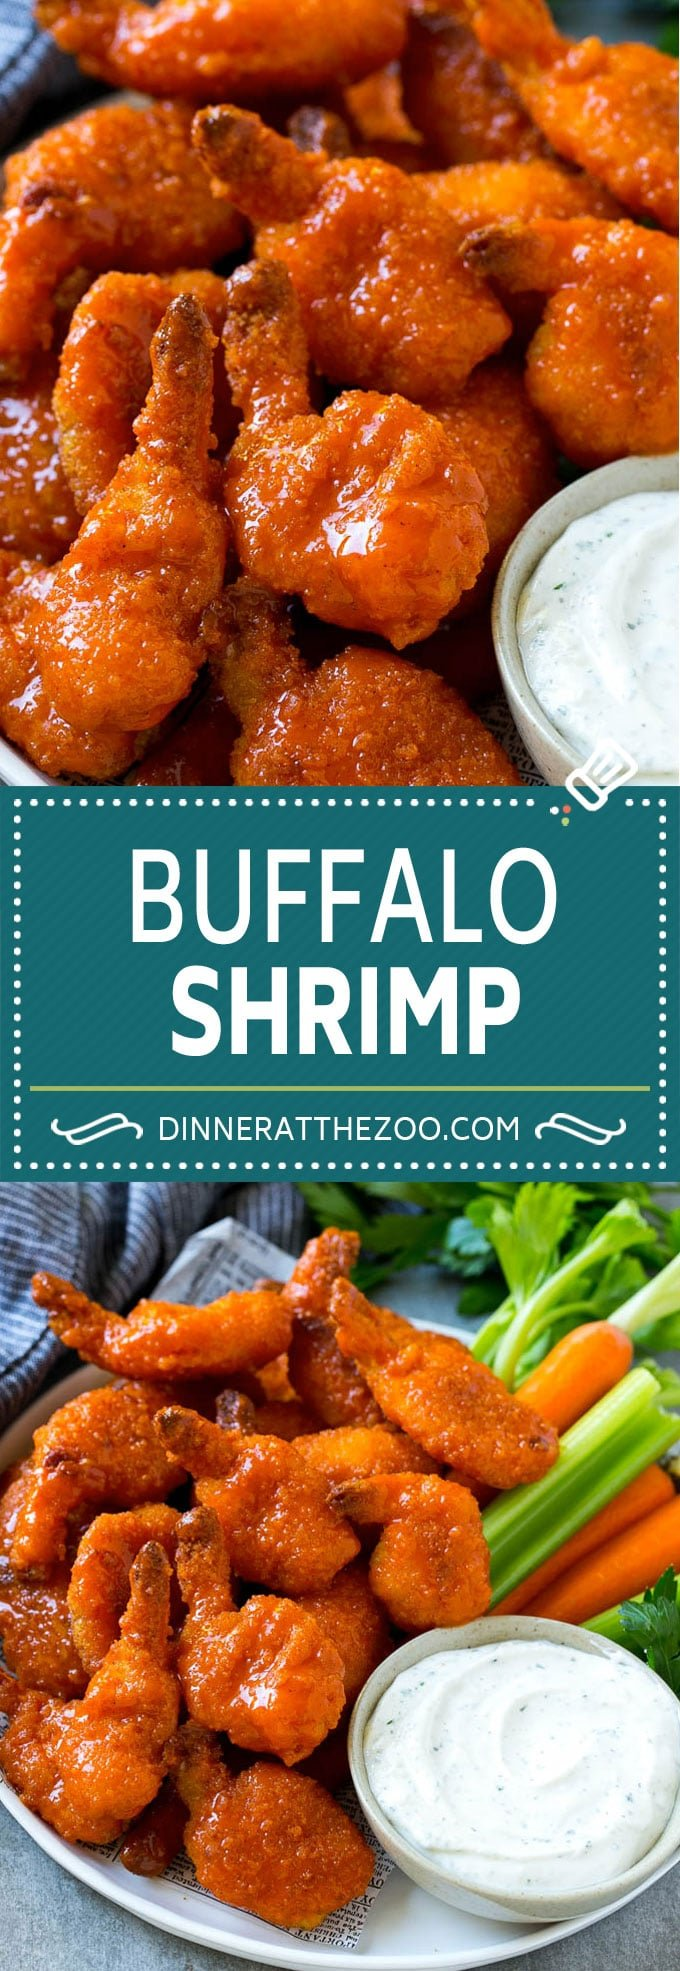 Buffalo Shrimp Recipe | Crispy Buffalo Shrimp | Fried Shrimp | Shrimp Appetizer #shrimp #appetizer #buffalo #spicy #dinner #dinneratthezoo